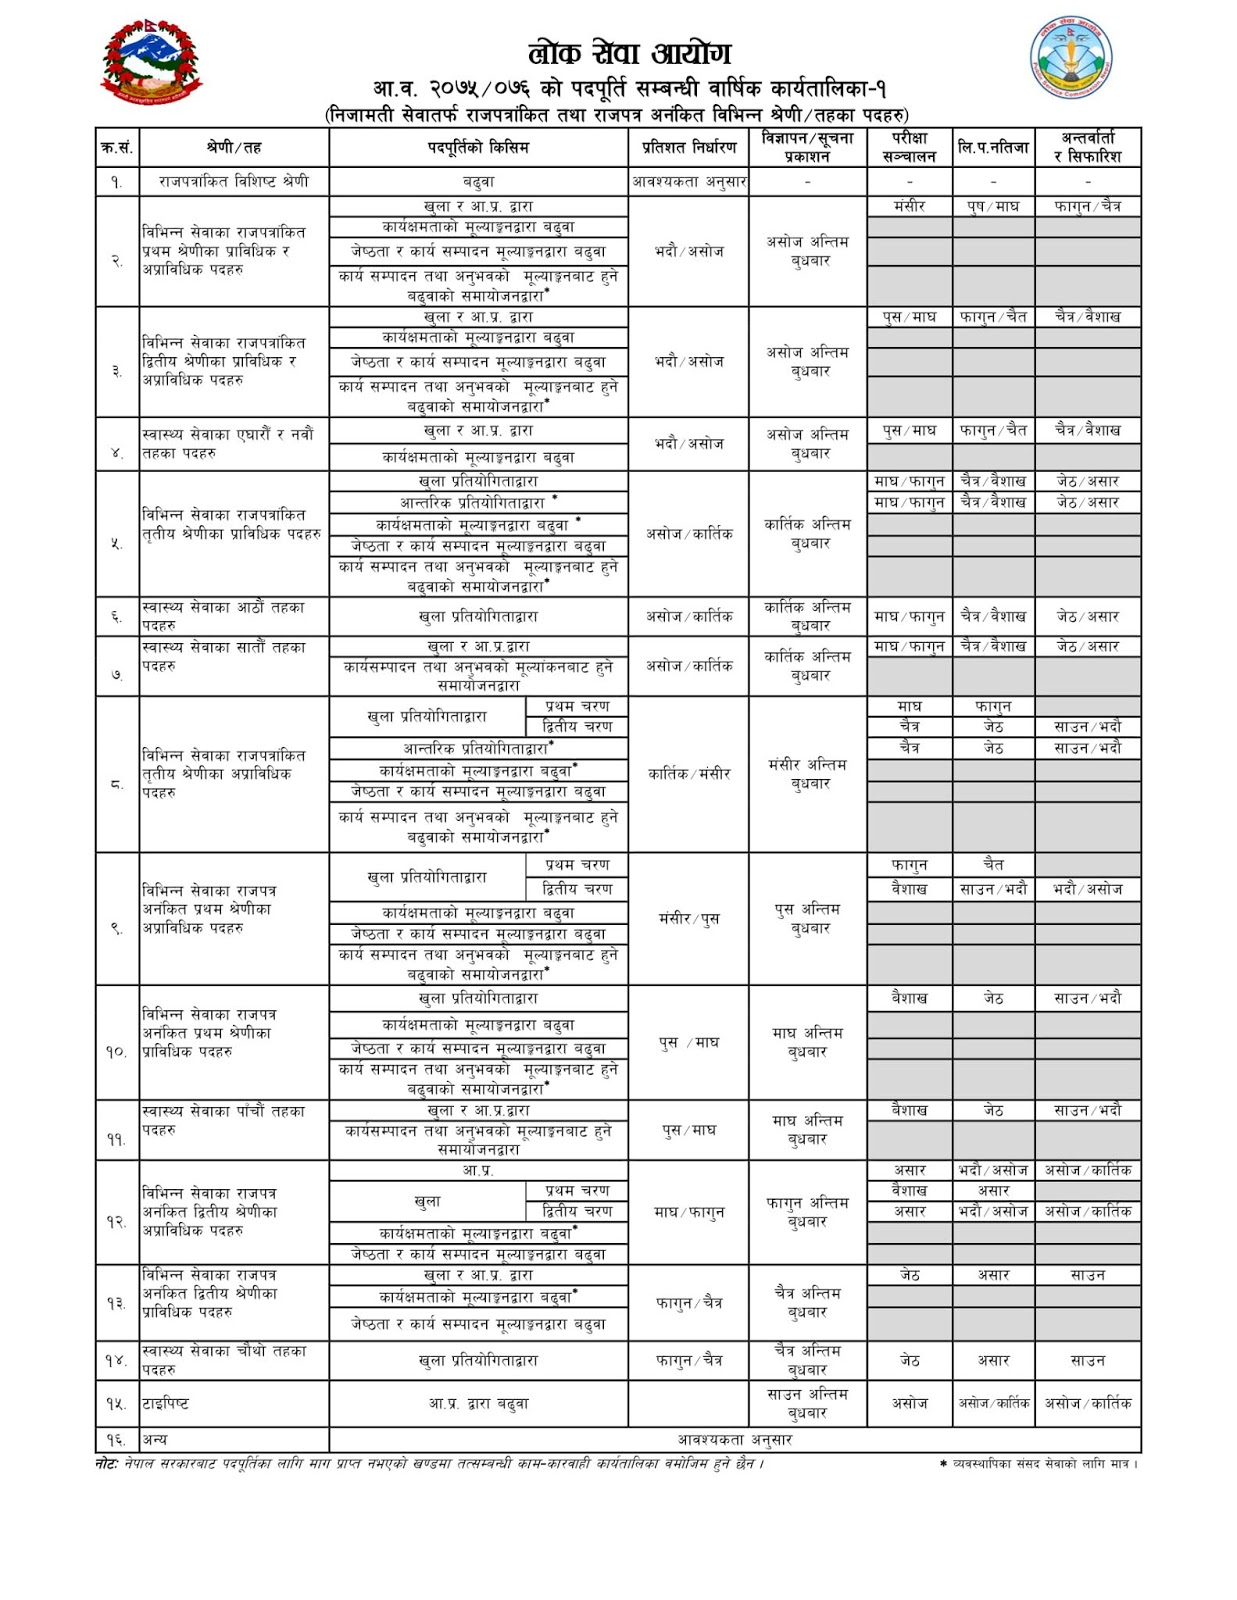 Yearly Time Table for 075-076 of PSC Nepal